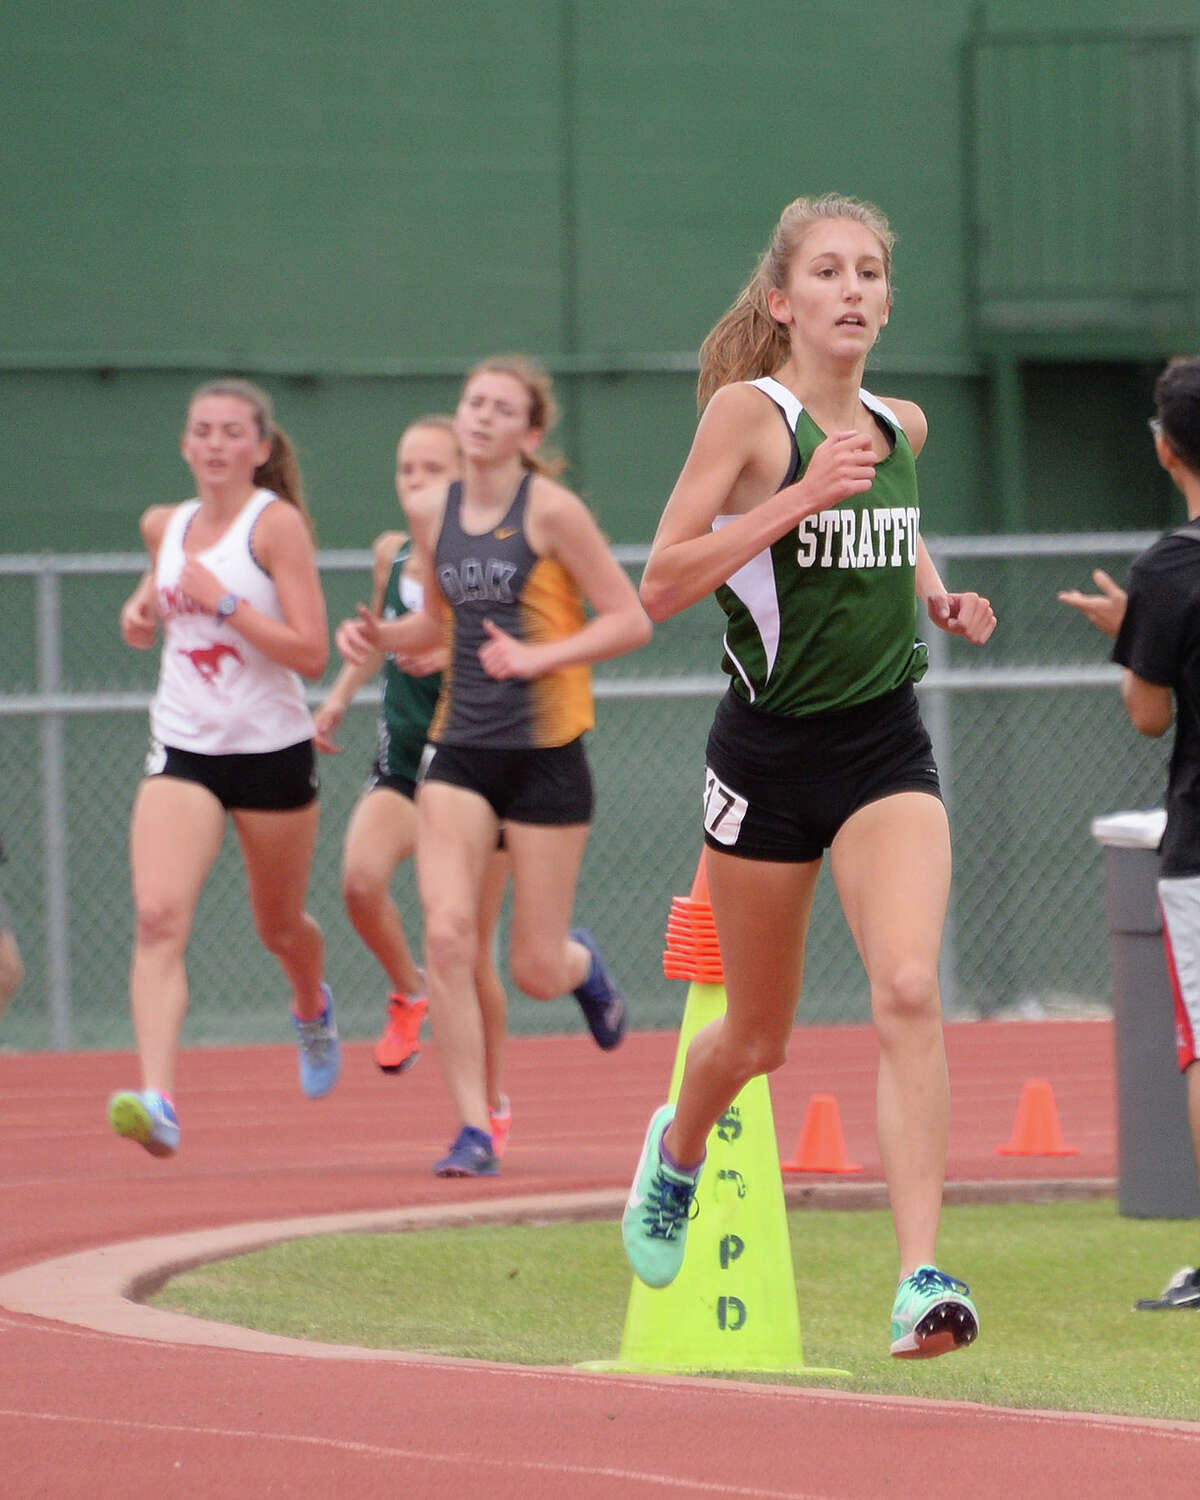 Grace Custer (17) of Stratford leads the pack and ultimately takes first place in the girls 3200 Meter event at the 15-6A Varsity District Track Meet on April 11, 2017 at Stratford High School, Houston, TX.